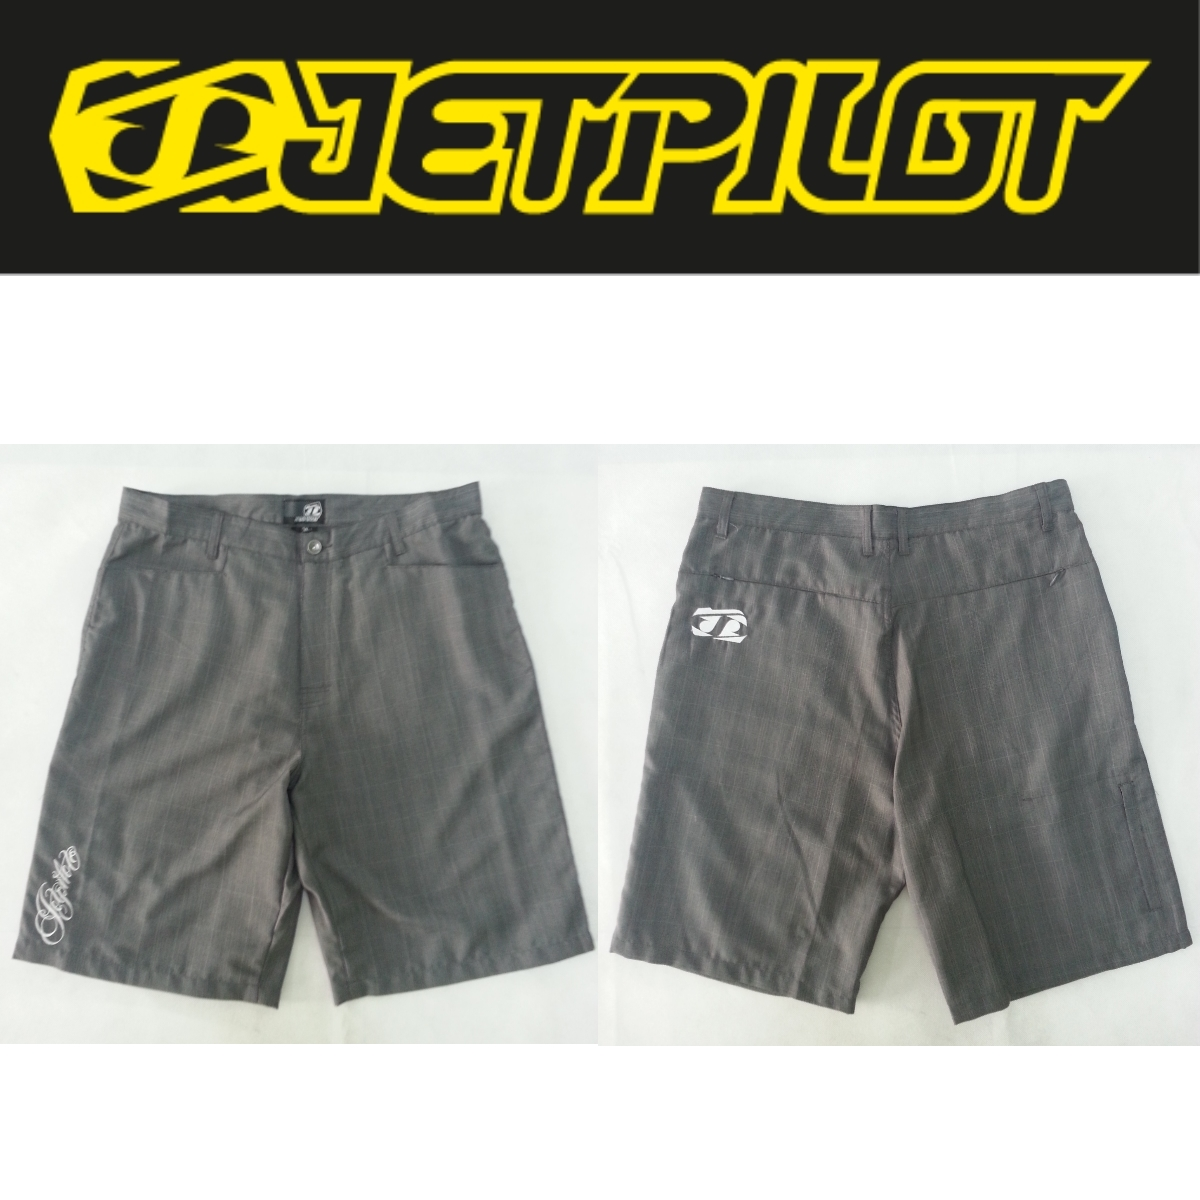 SALE!!! Jet Pilot Reactive Mens Walkshort Shorts 70% Discount